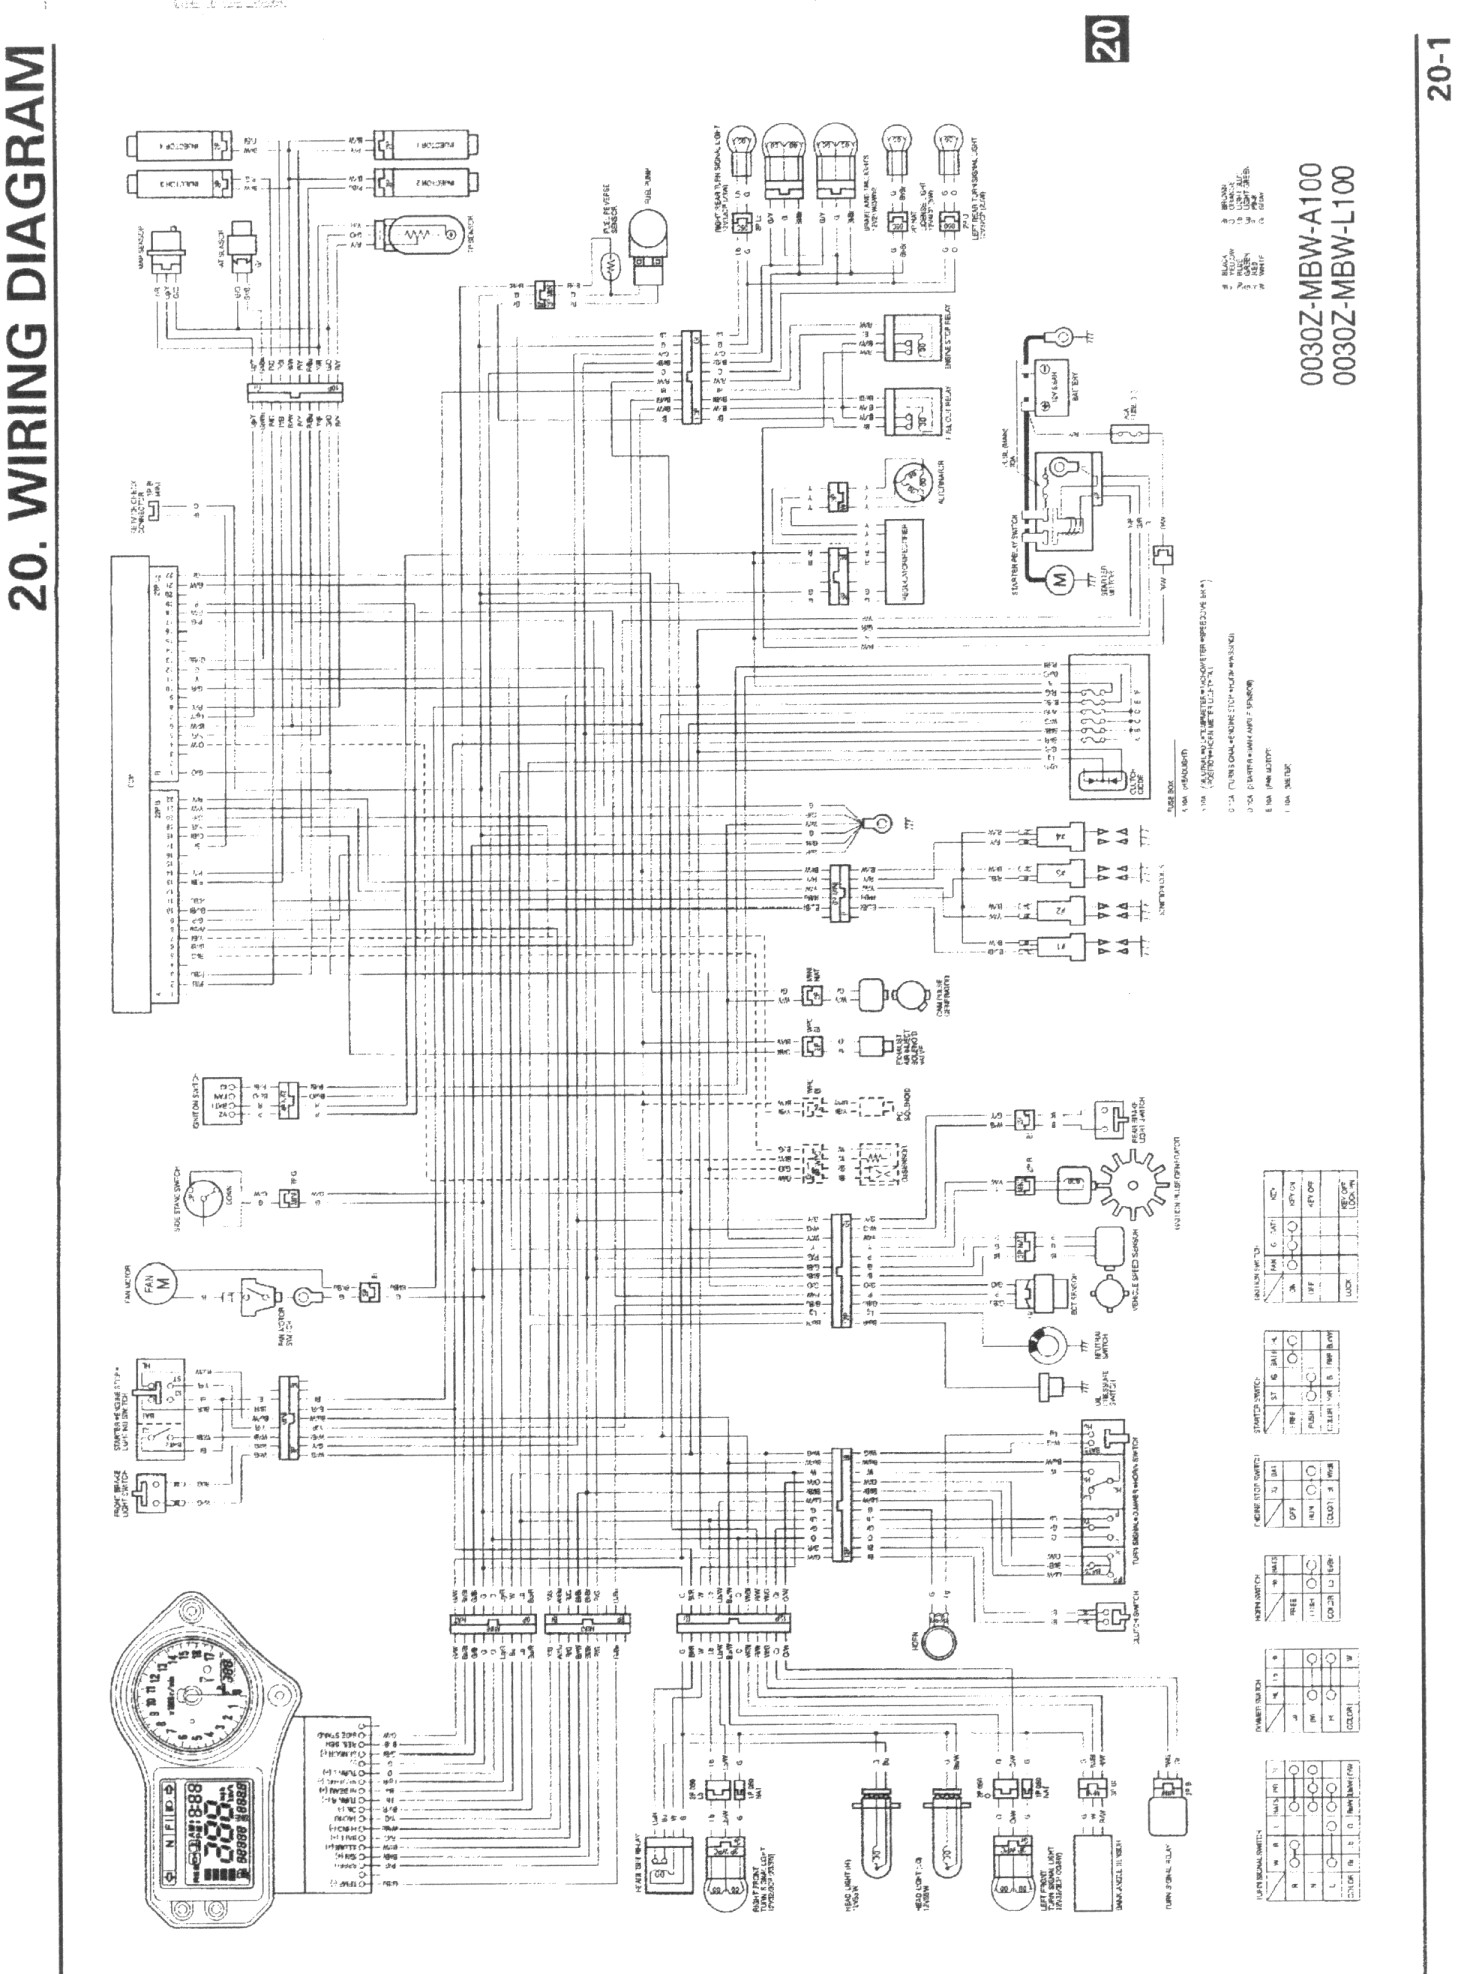 Honda 2005 Cbr 600 F4i Wiring Diagram : 37 Wiring Diagram